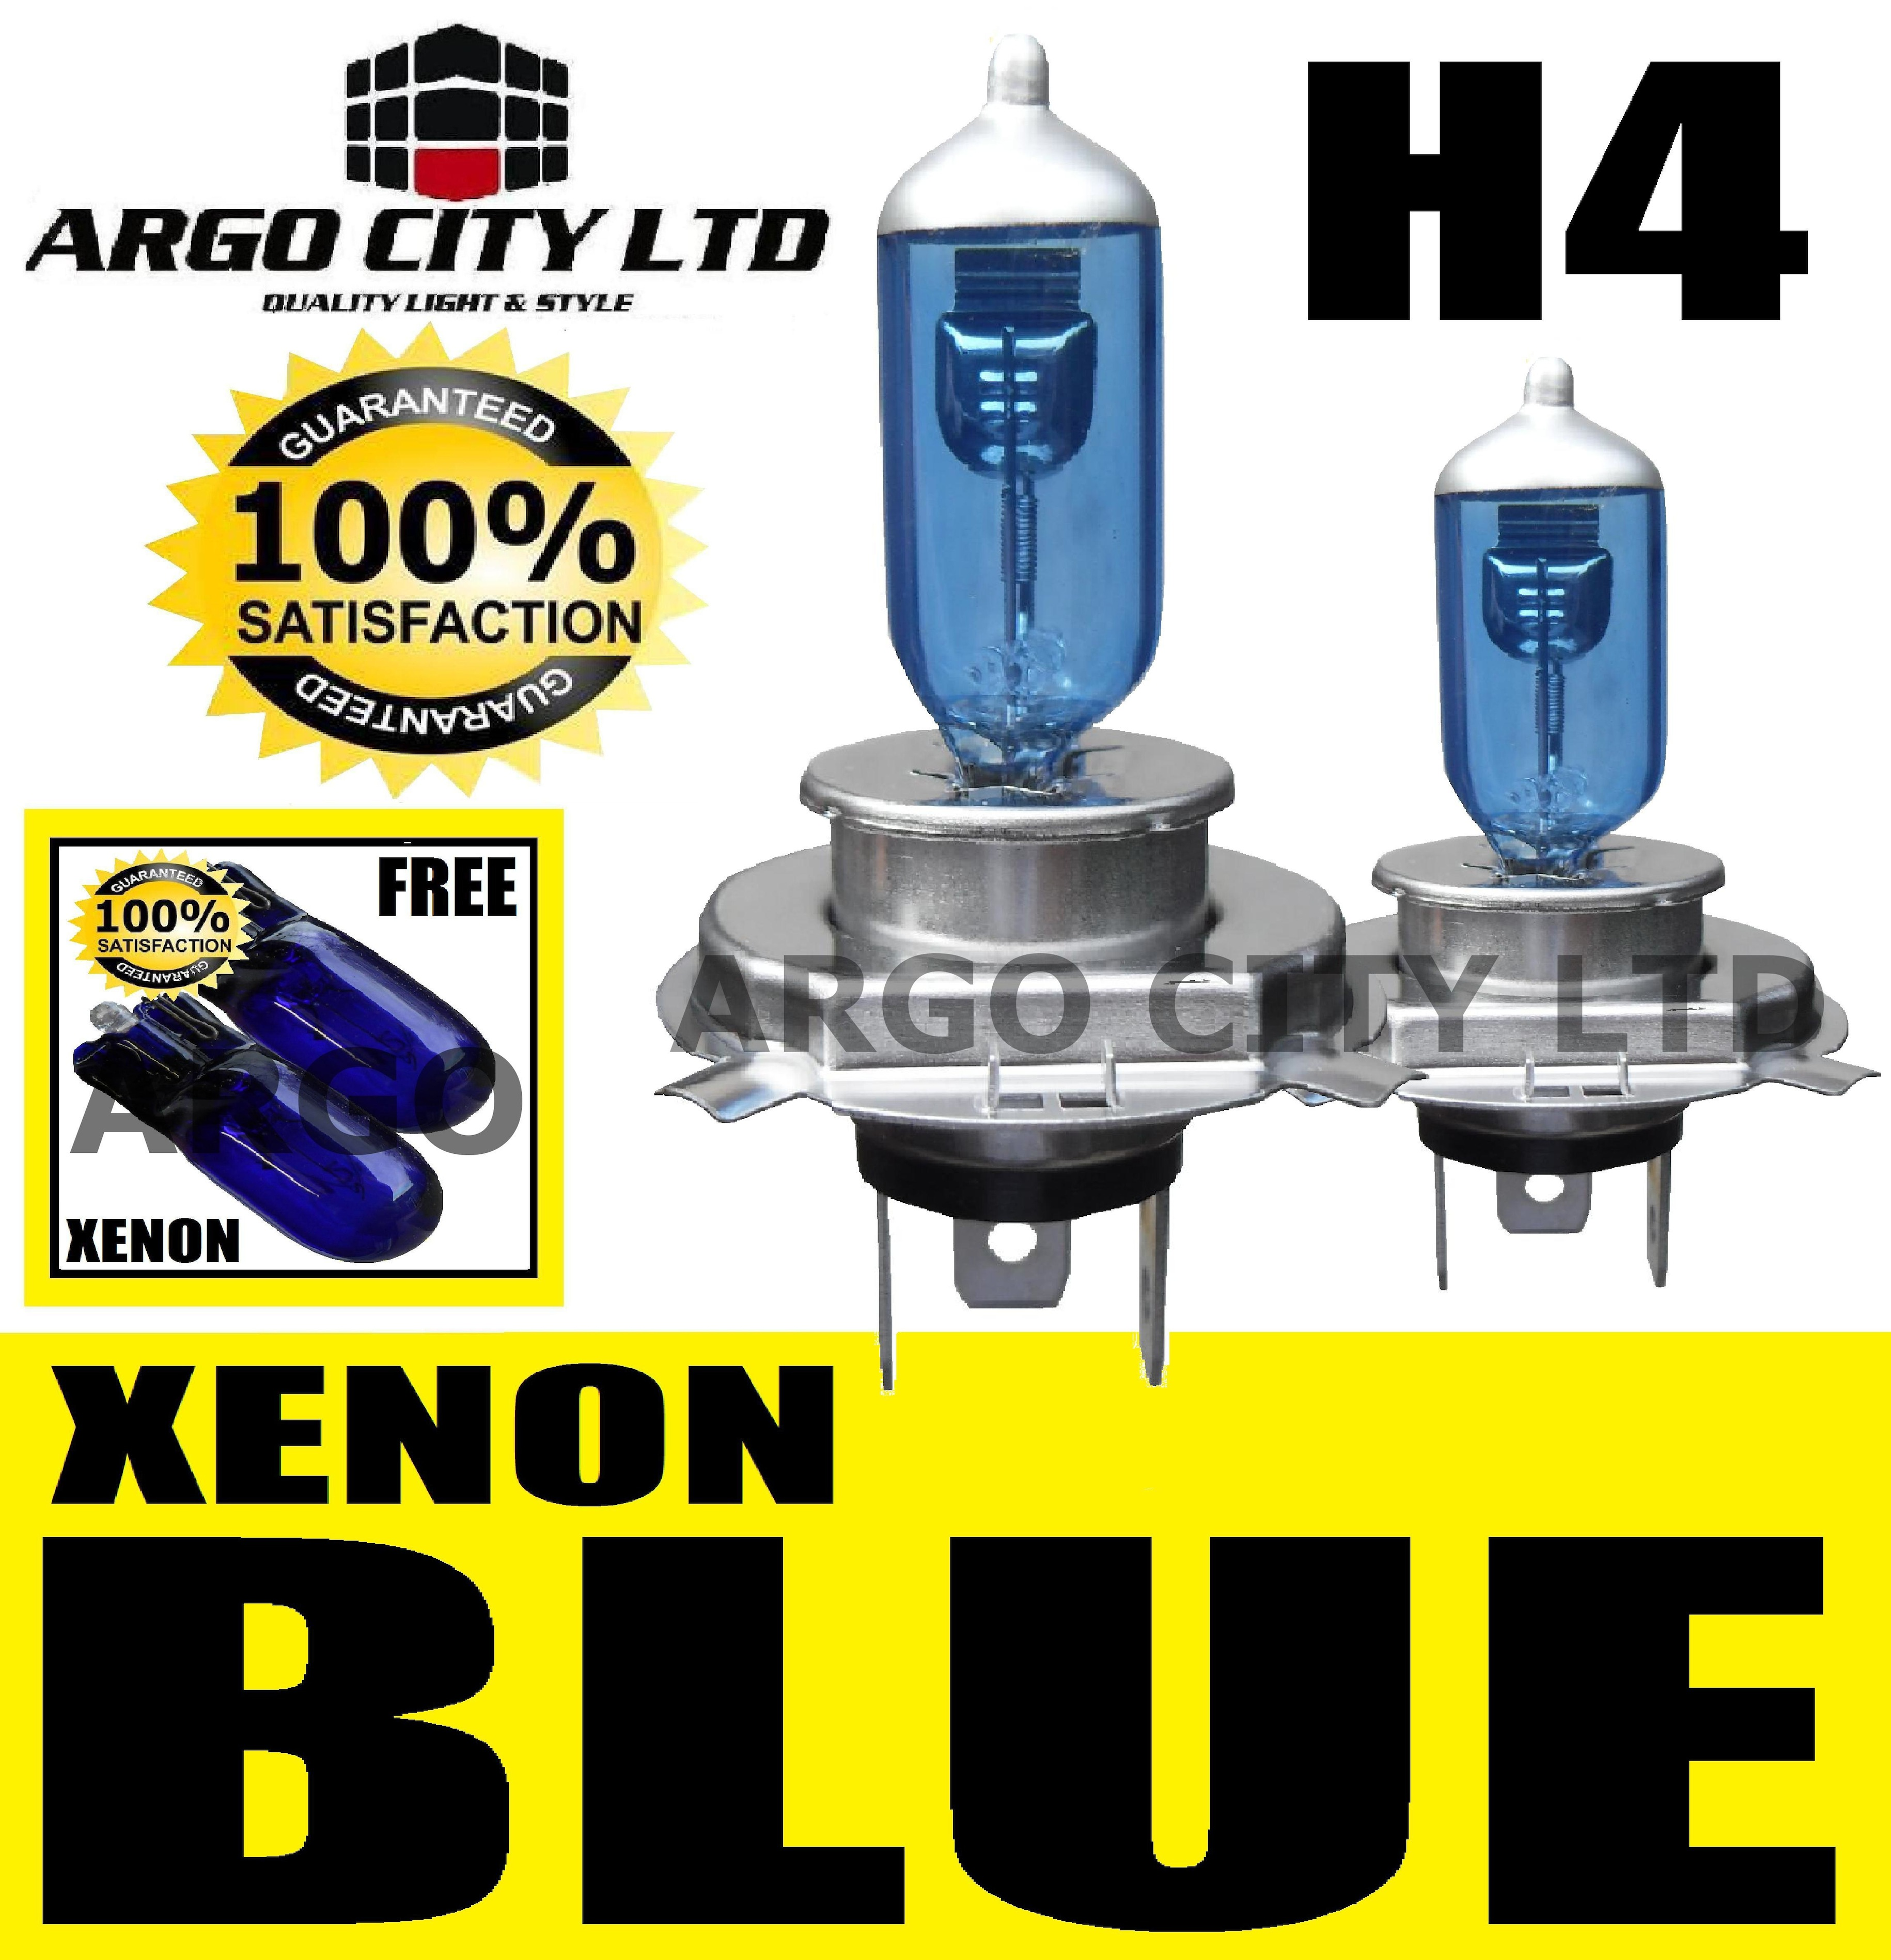 H4 XENON BLUE HEADLIGHT BULBS HARLEY DAVIDSON FXST 1340 Softail 4 Gang-Kicker